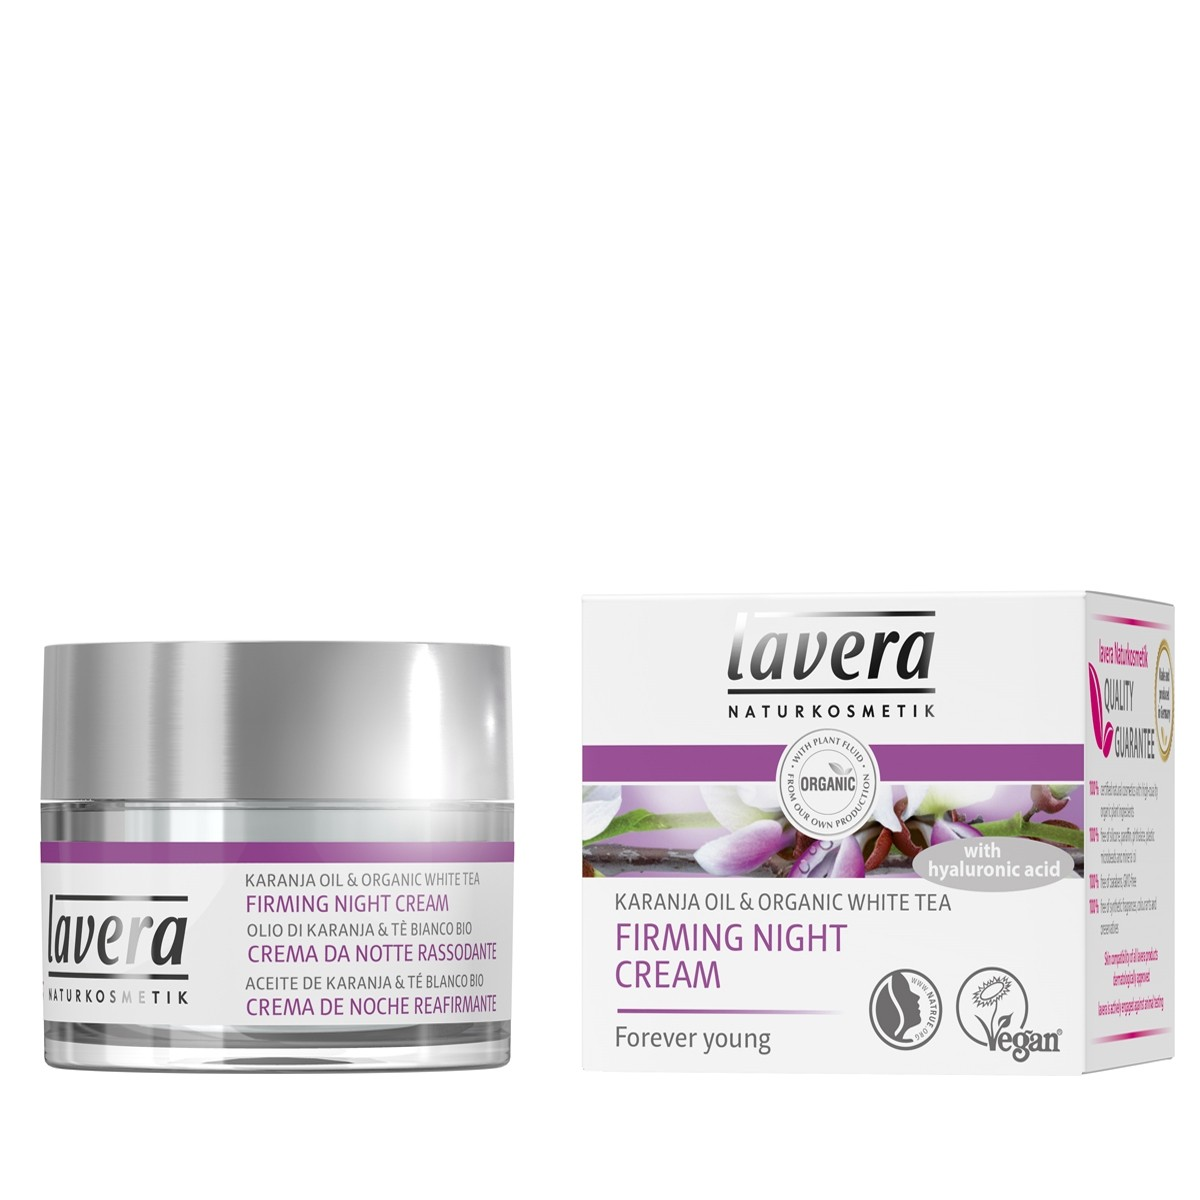 Lavera Firming Night Cream Anti Wrinkle